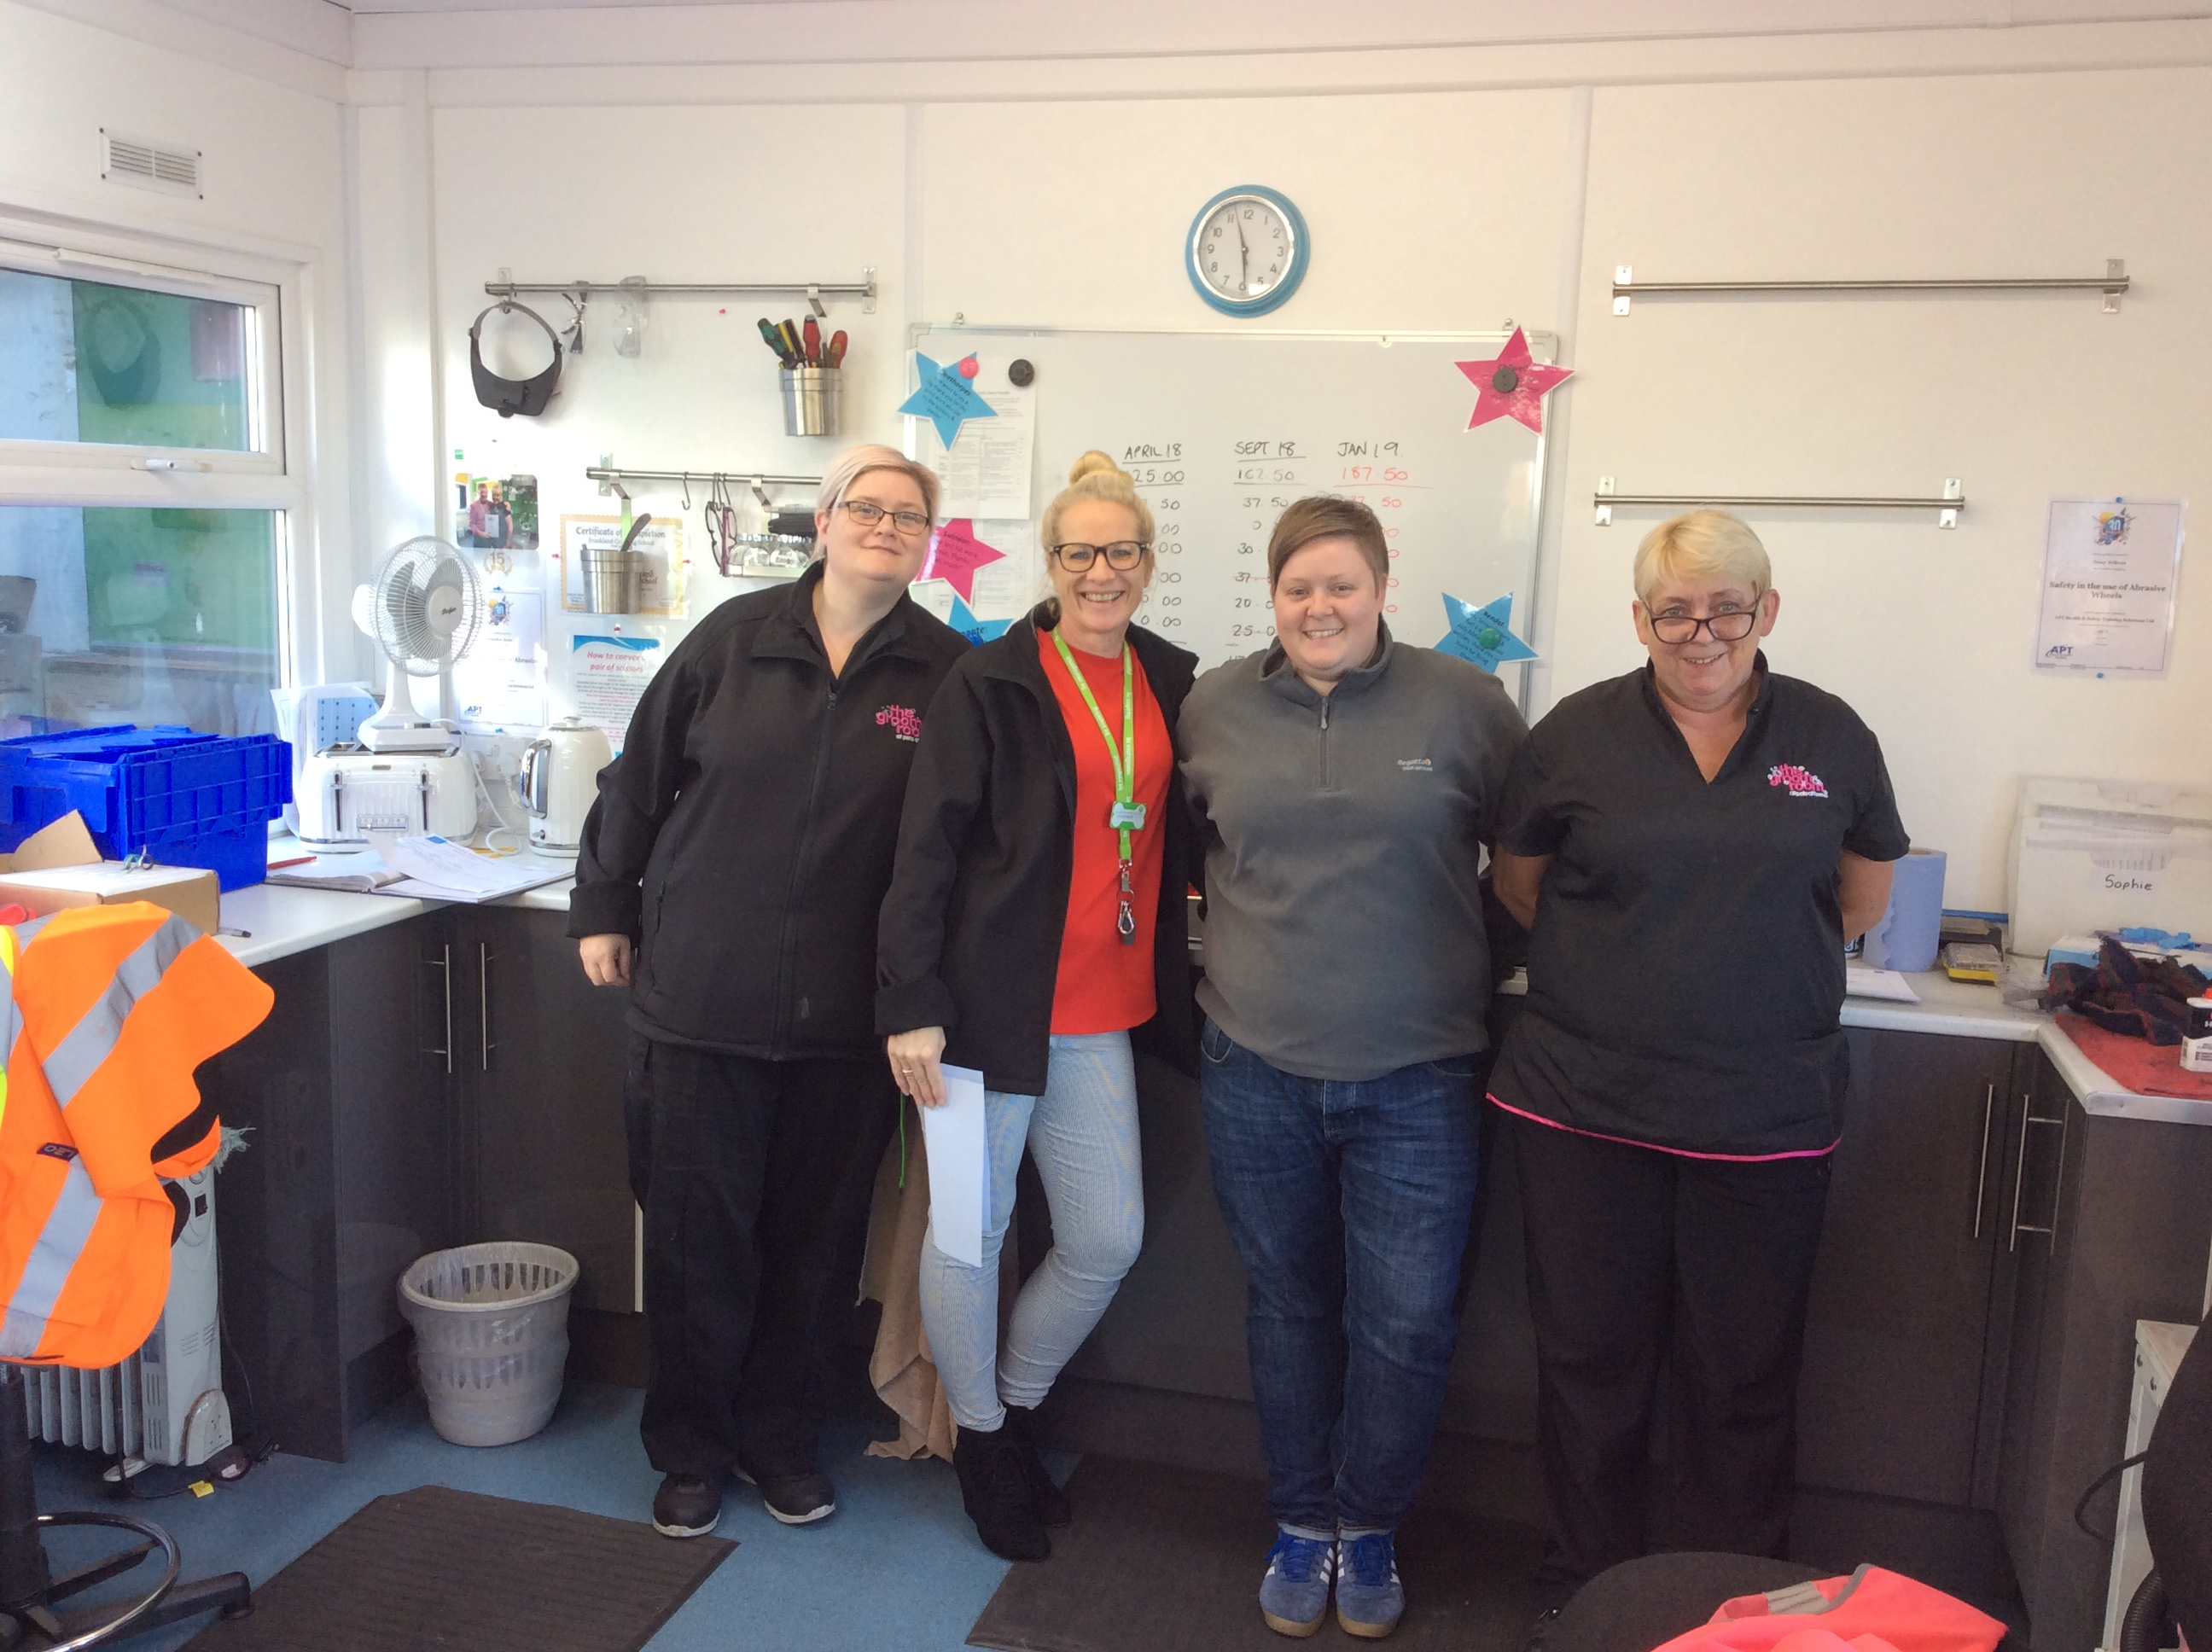 My pleasurable visit to Anna Cotterill- Pets at Home